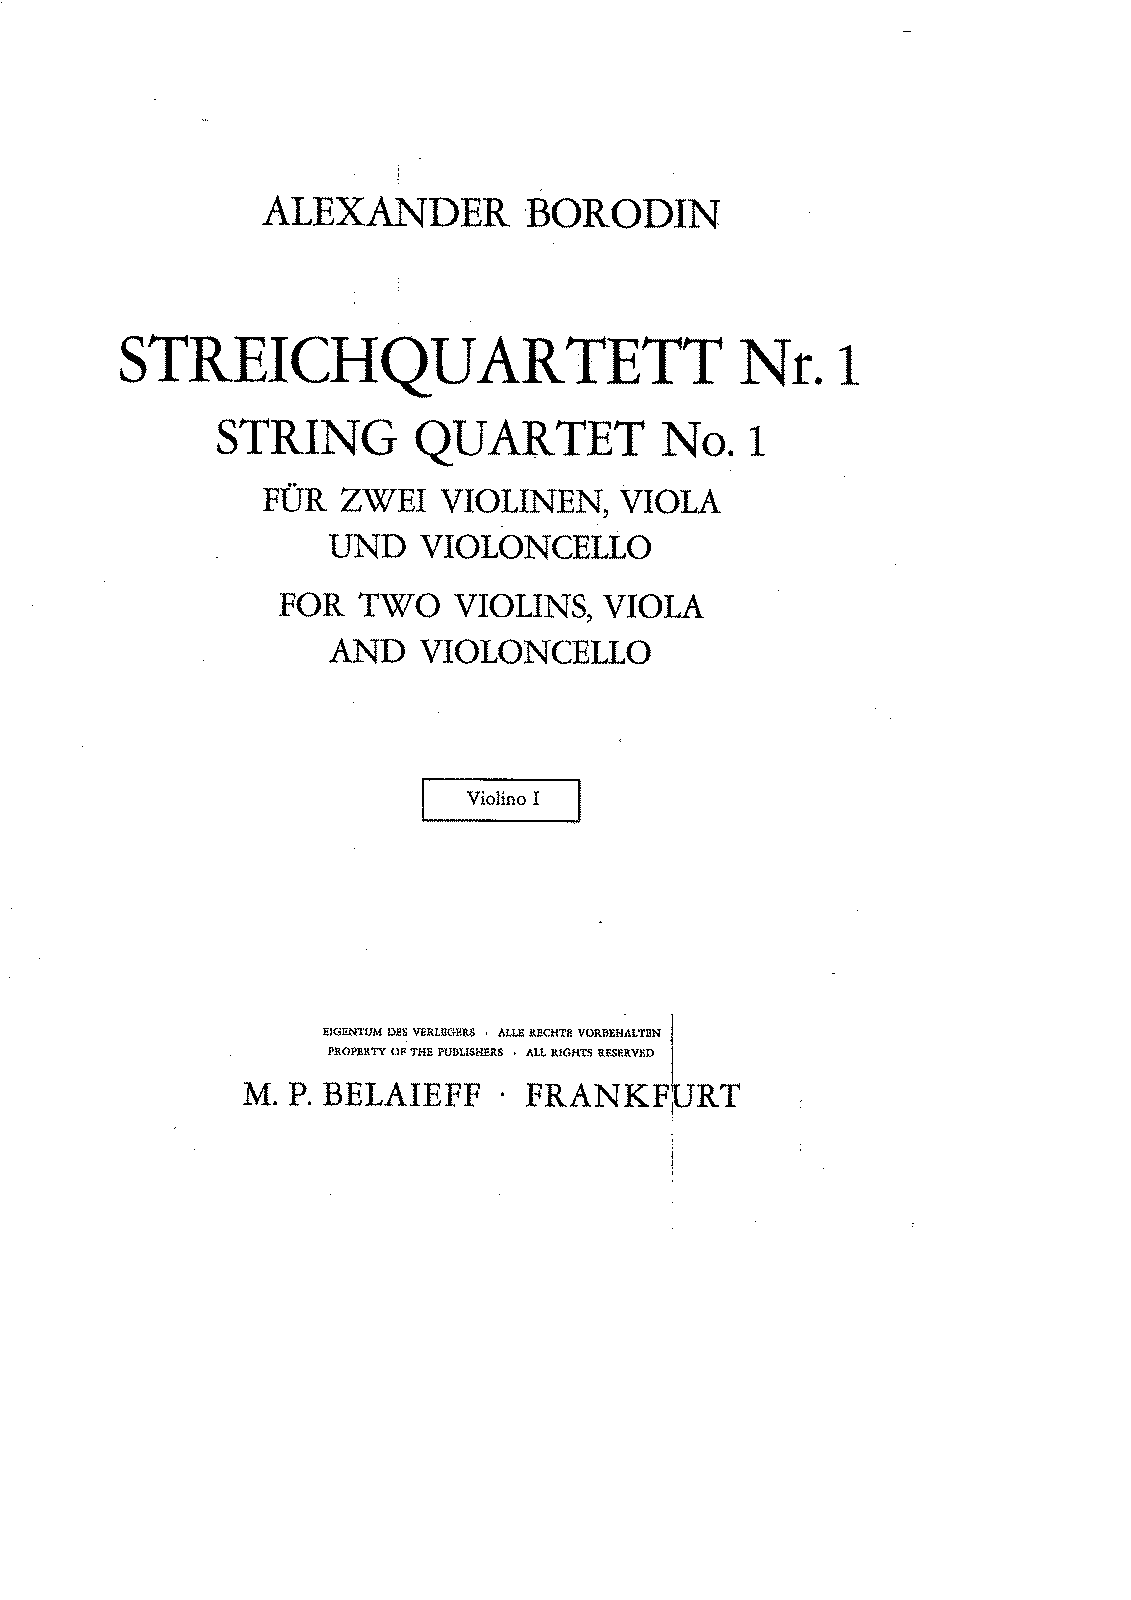 PMLP19369-Borodin - String Quartet No.1 in A Major vn1.pdf